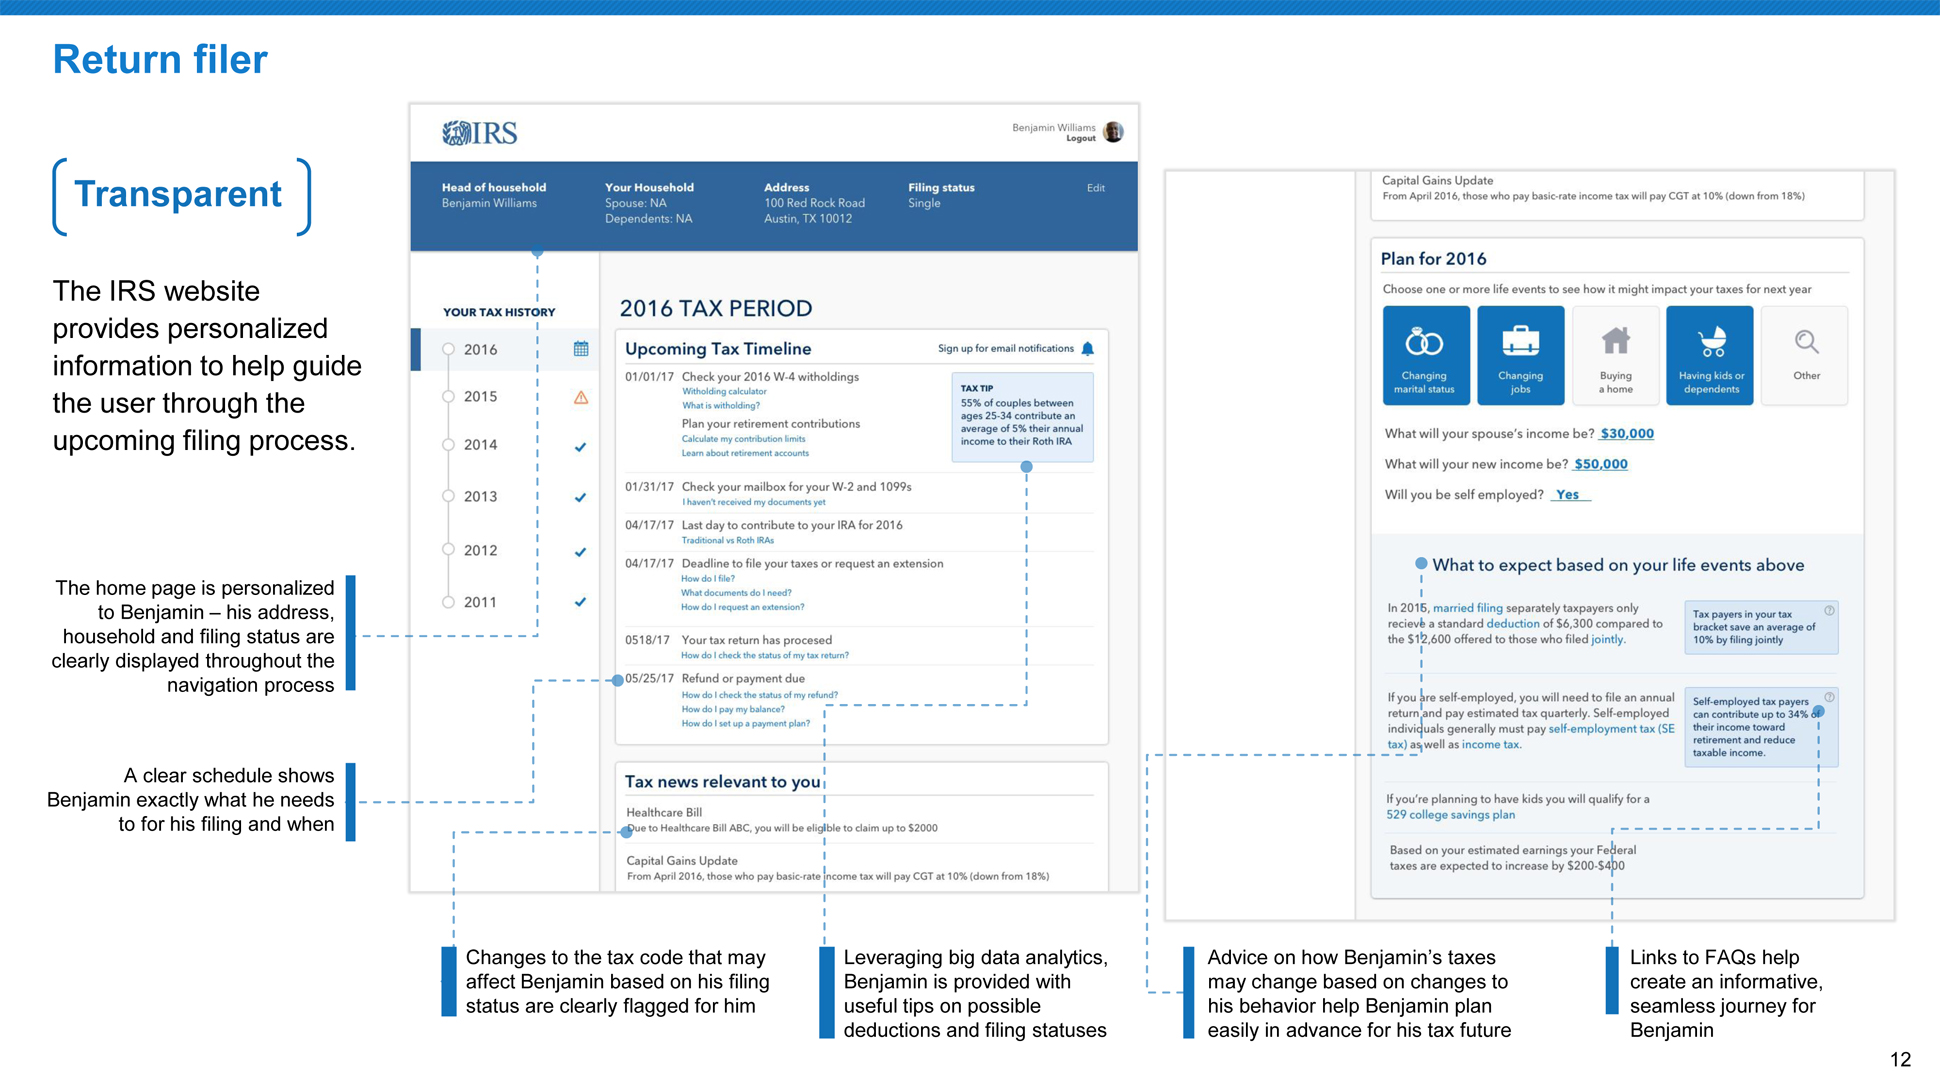 A page from a tax design challenge submission. The user's tax history is shown as well as a return filing tool.